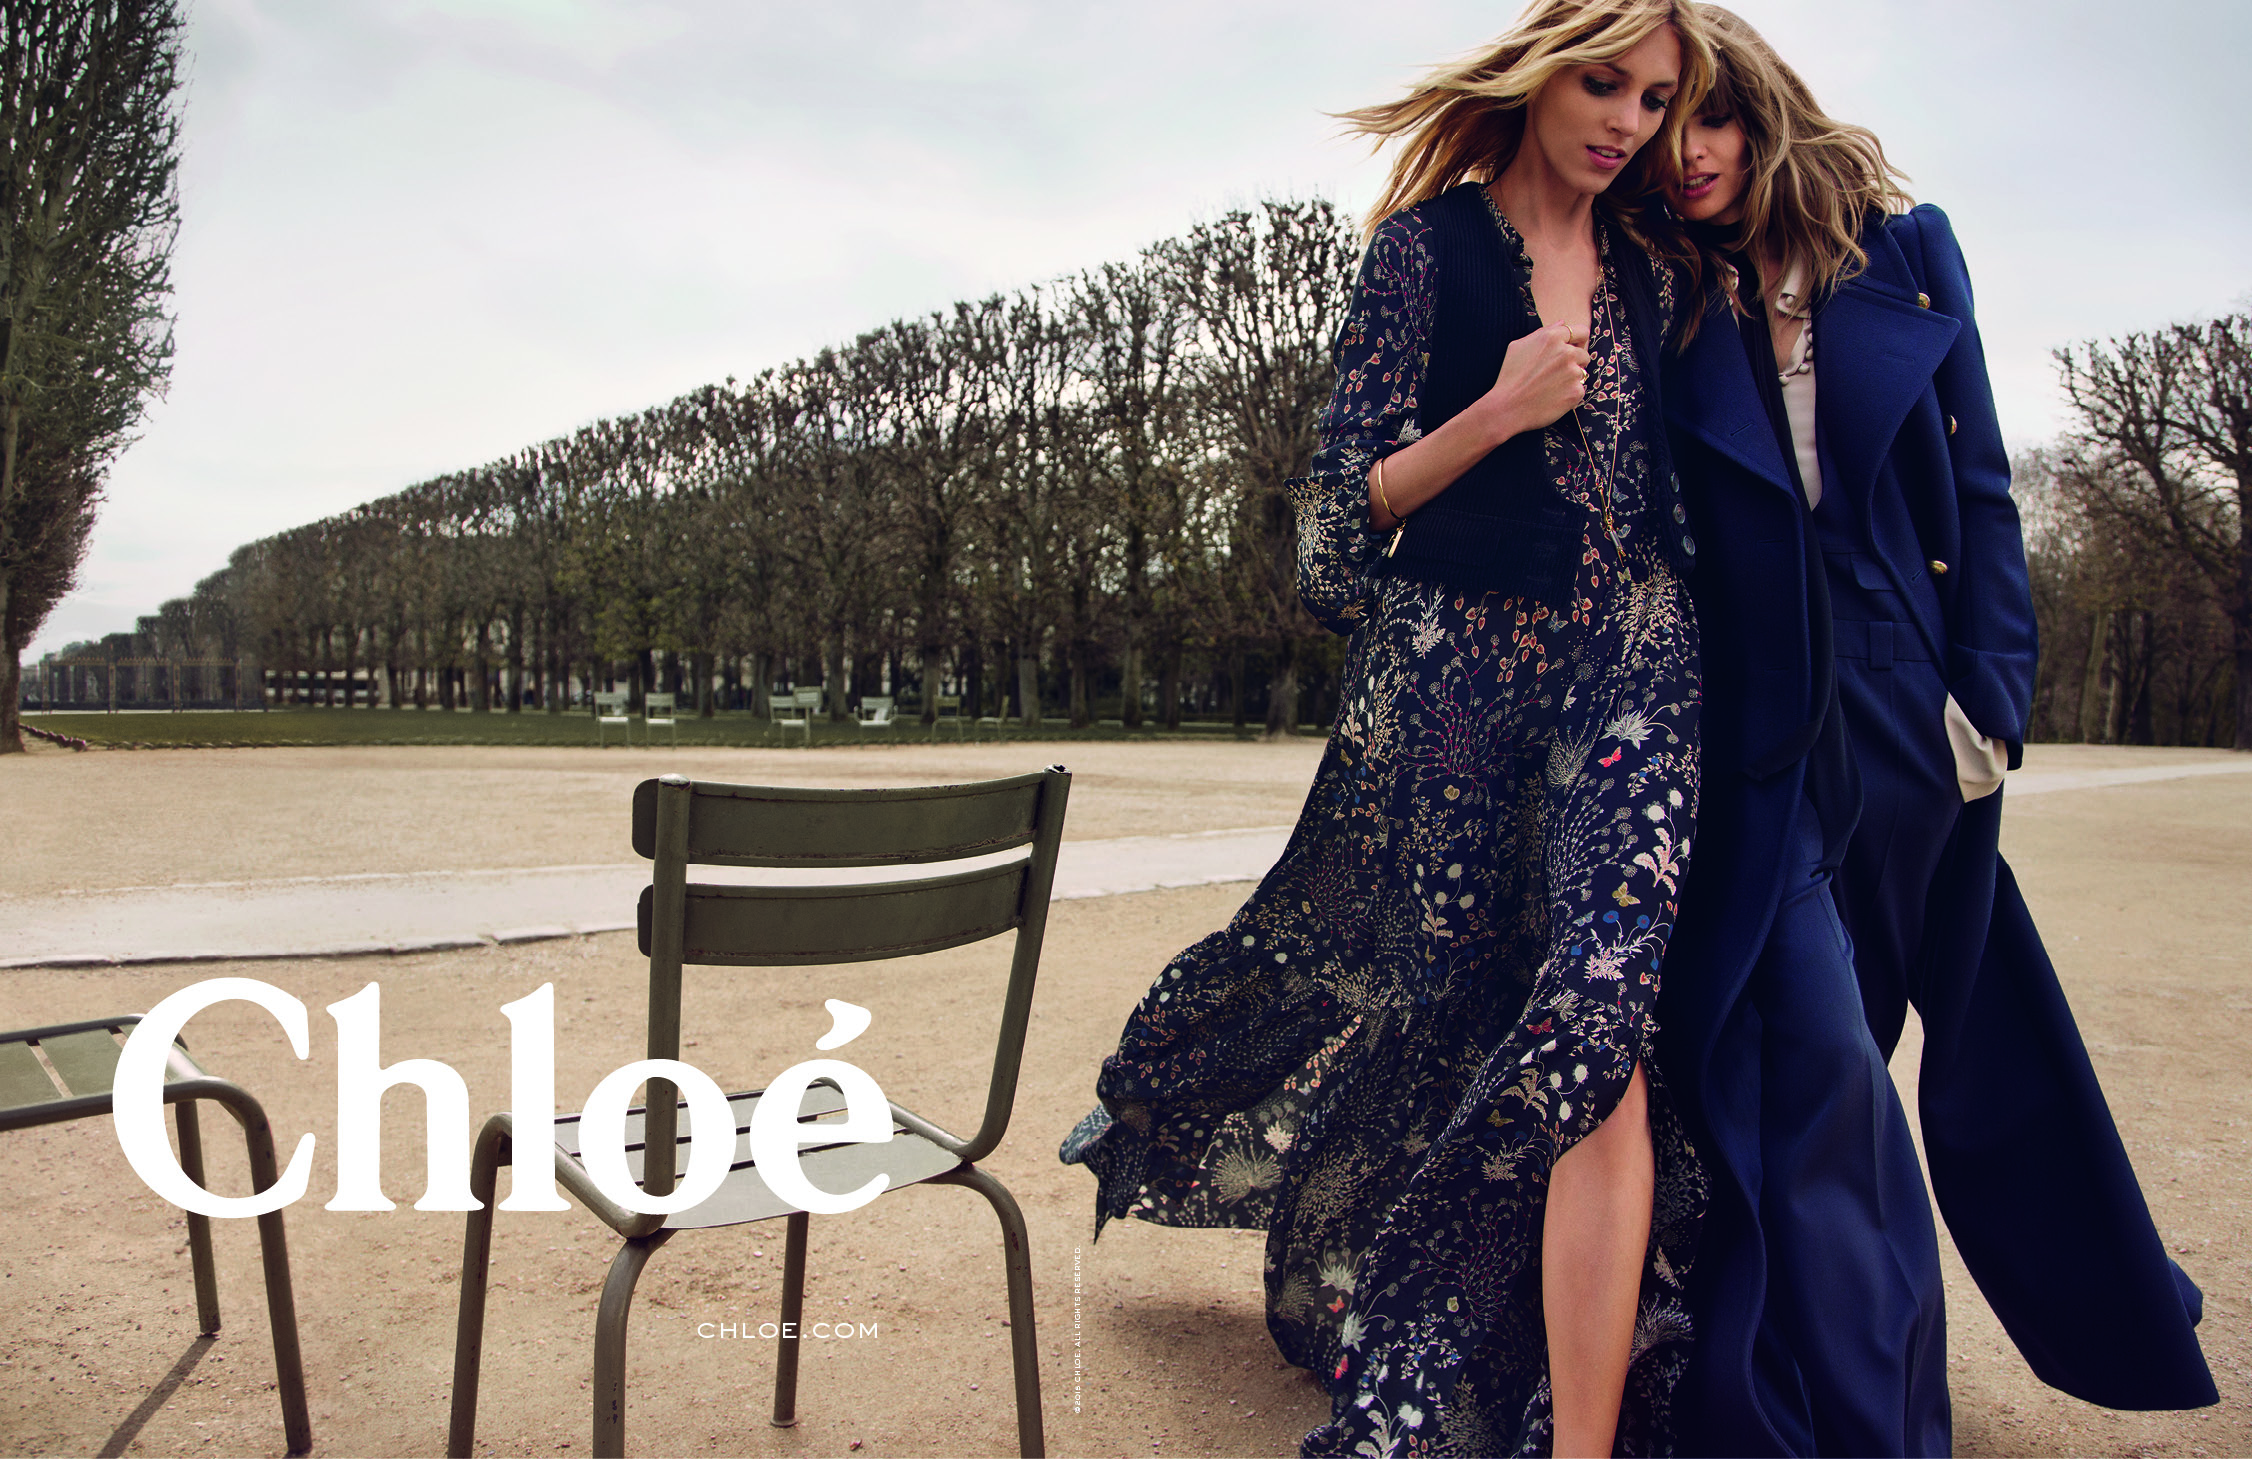 pictures Chloé SpringSummer 2014 Campaign